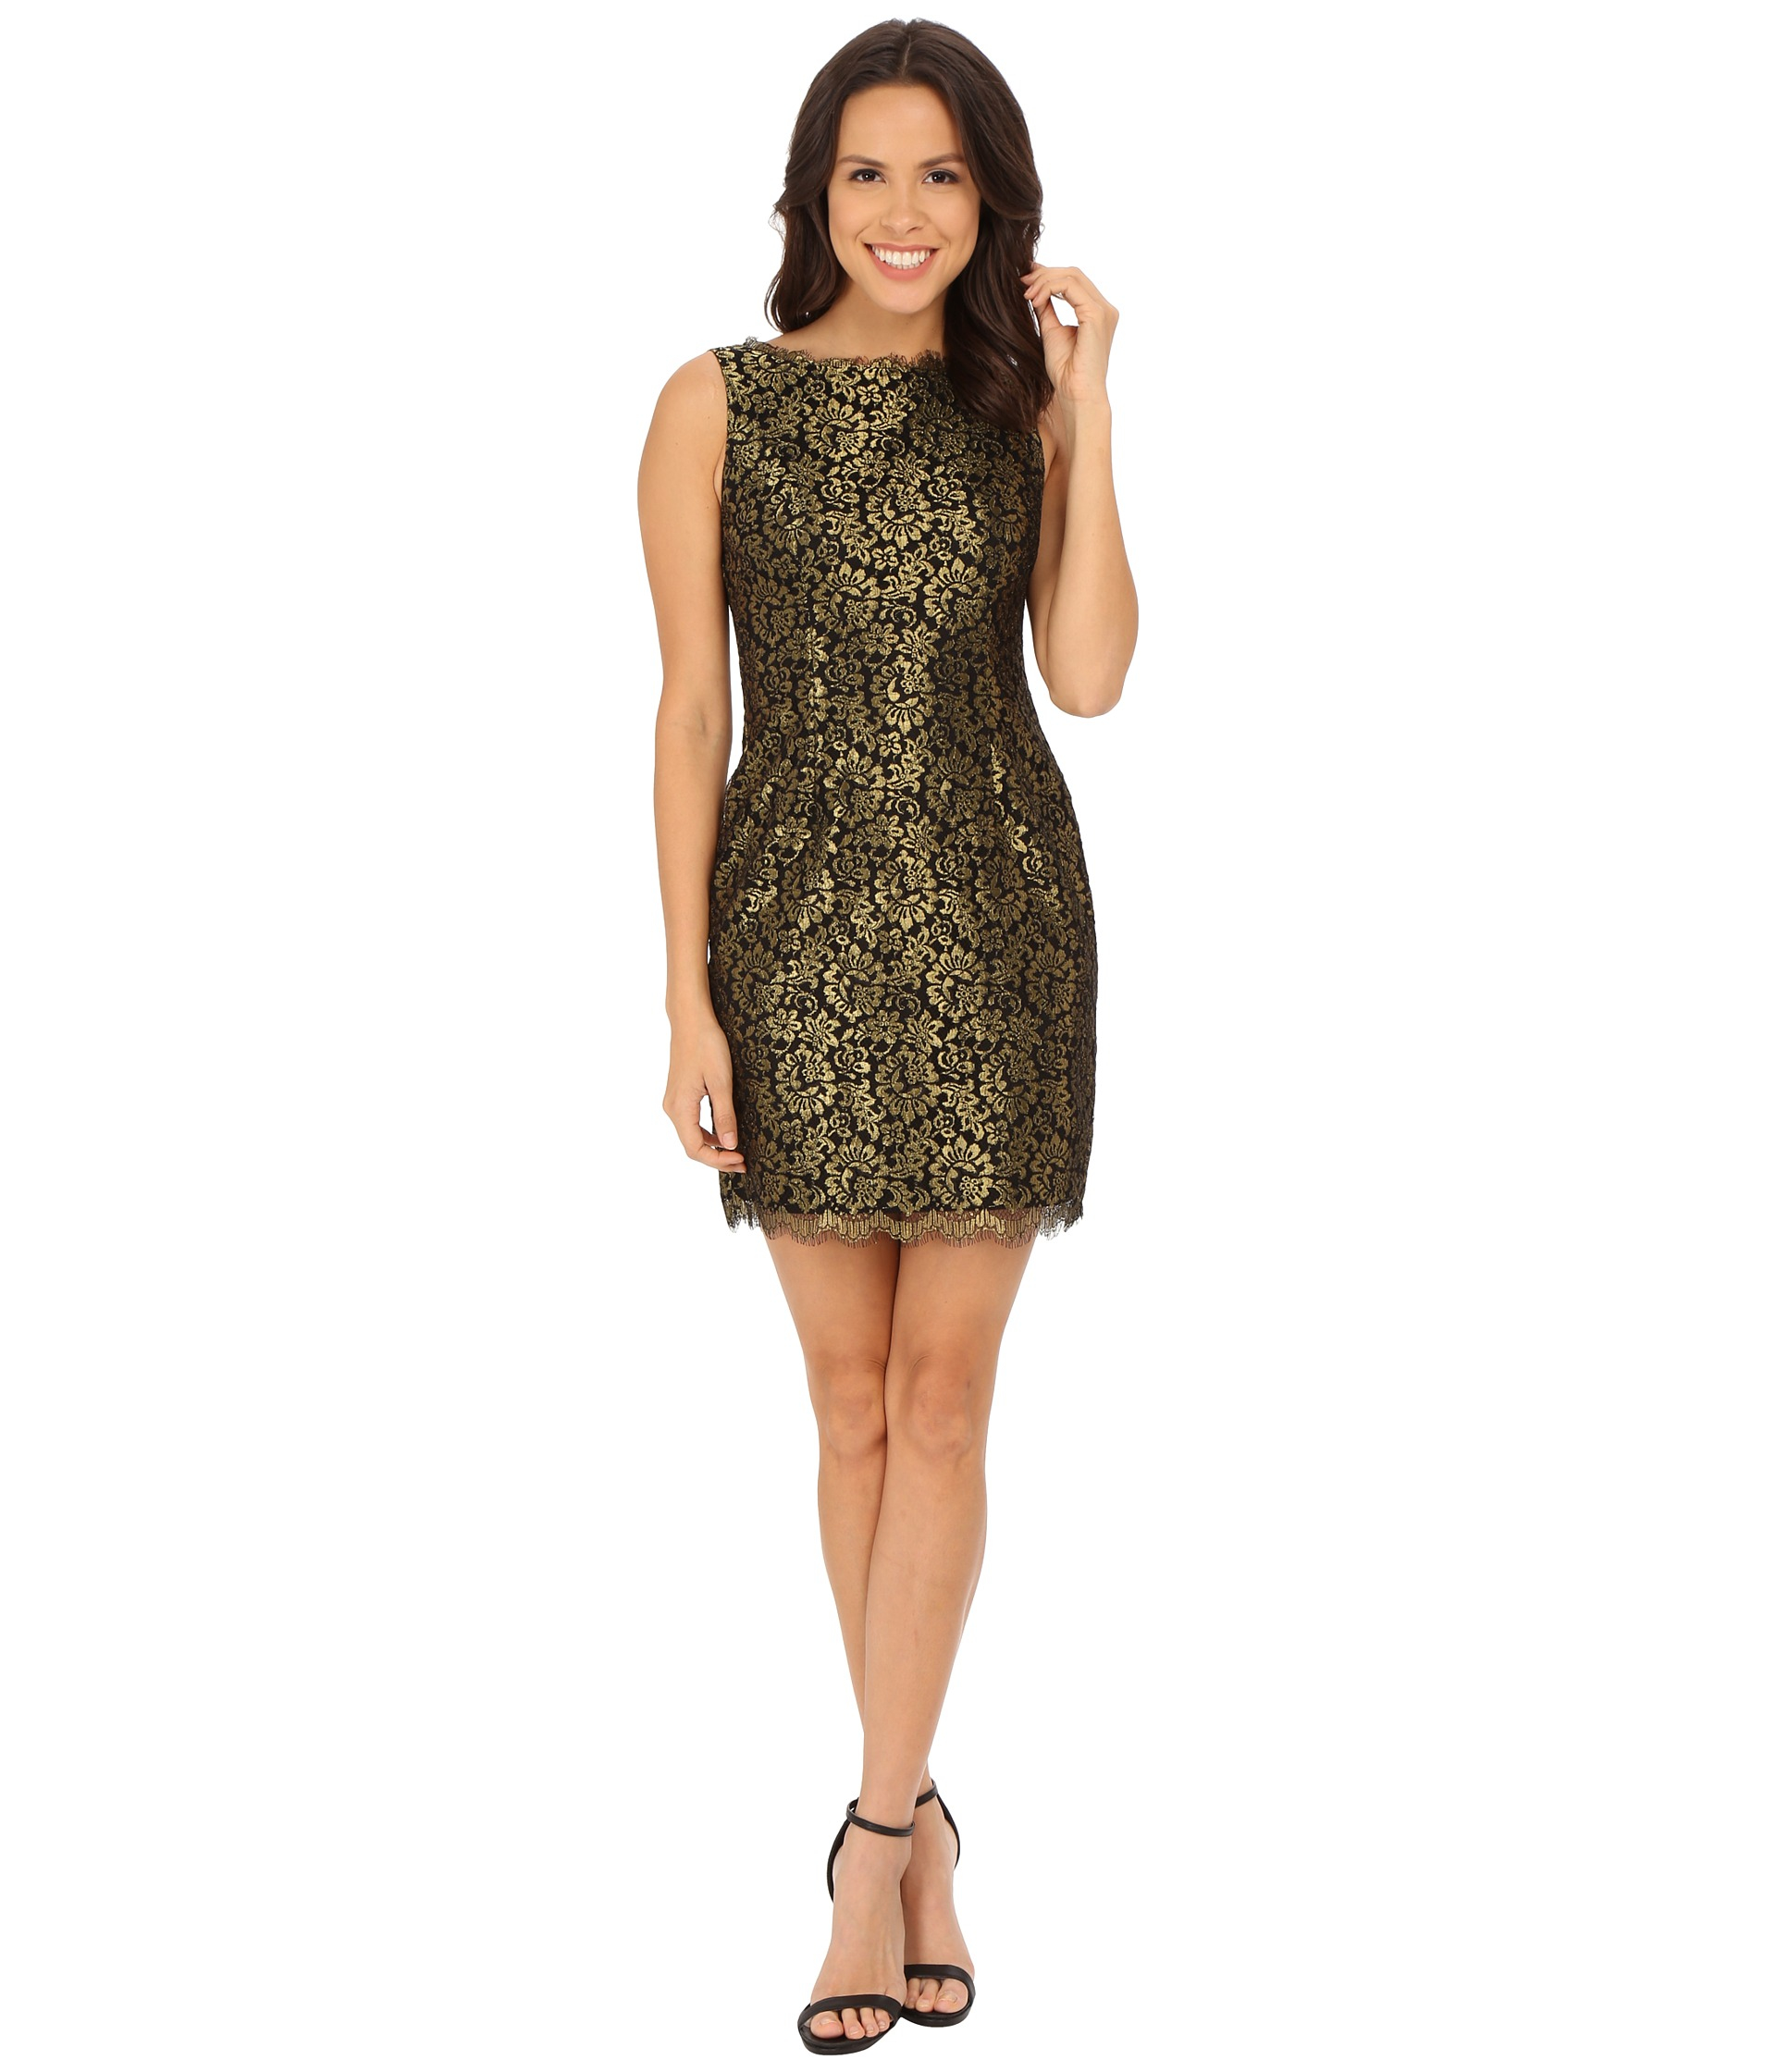 ... Sleeveless Metallic Lace Cocktail Dress in Black (Black/Gold) | Lyst